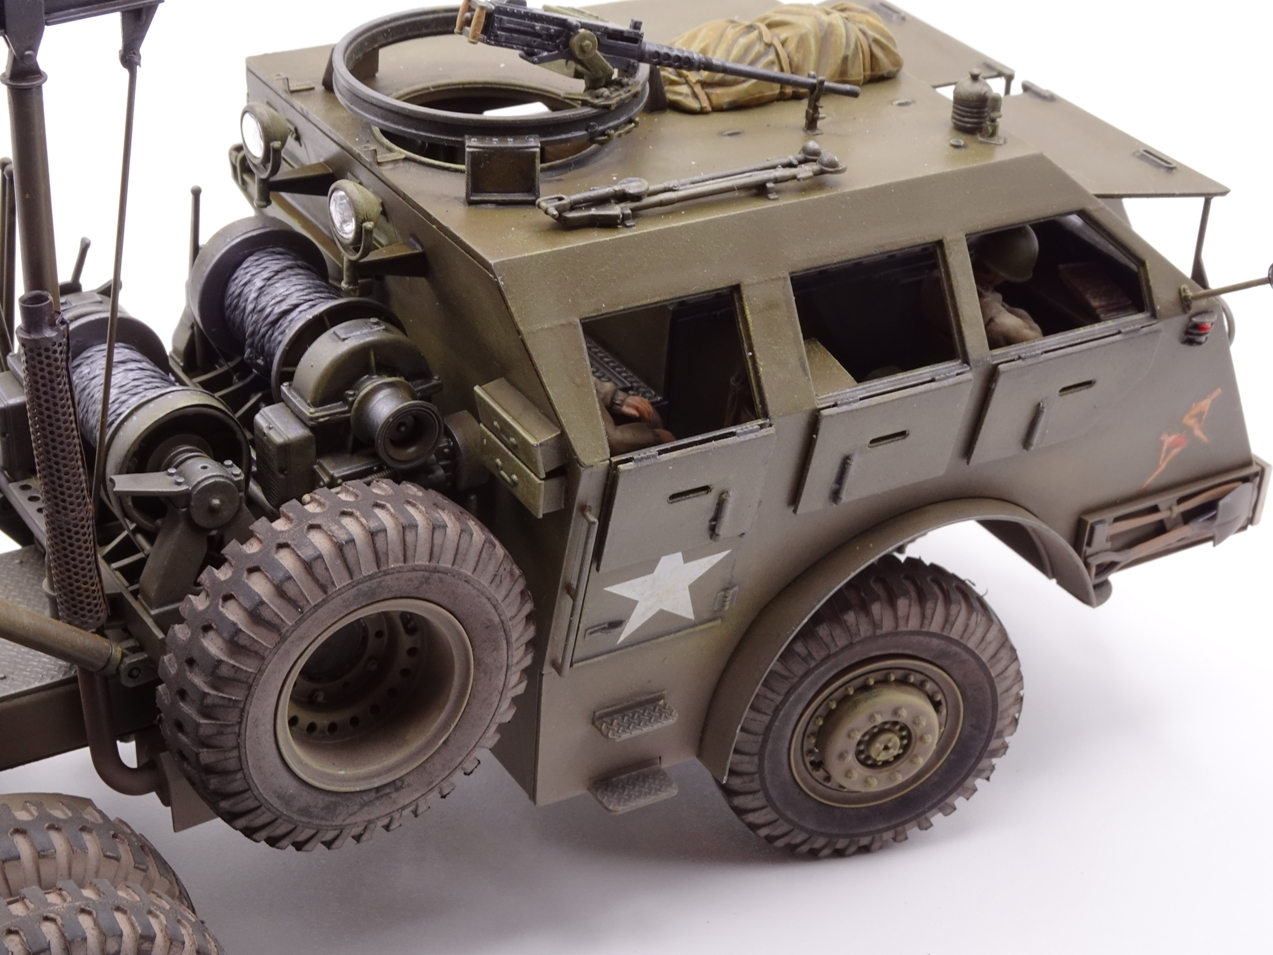 [Tamiya 1/35] M26 Armored tank recovery vehicle réf. 35244 - Page 4 M26-fin-11